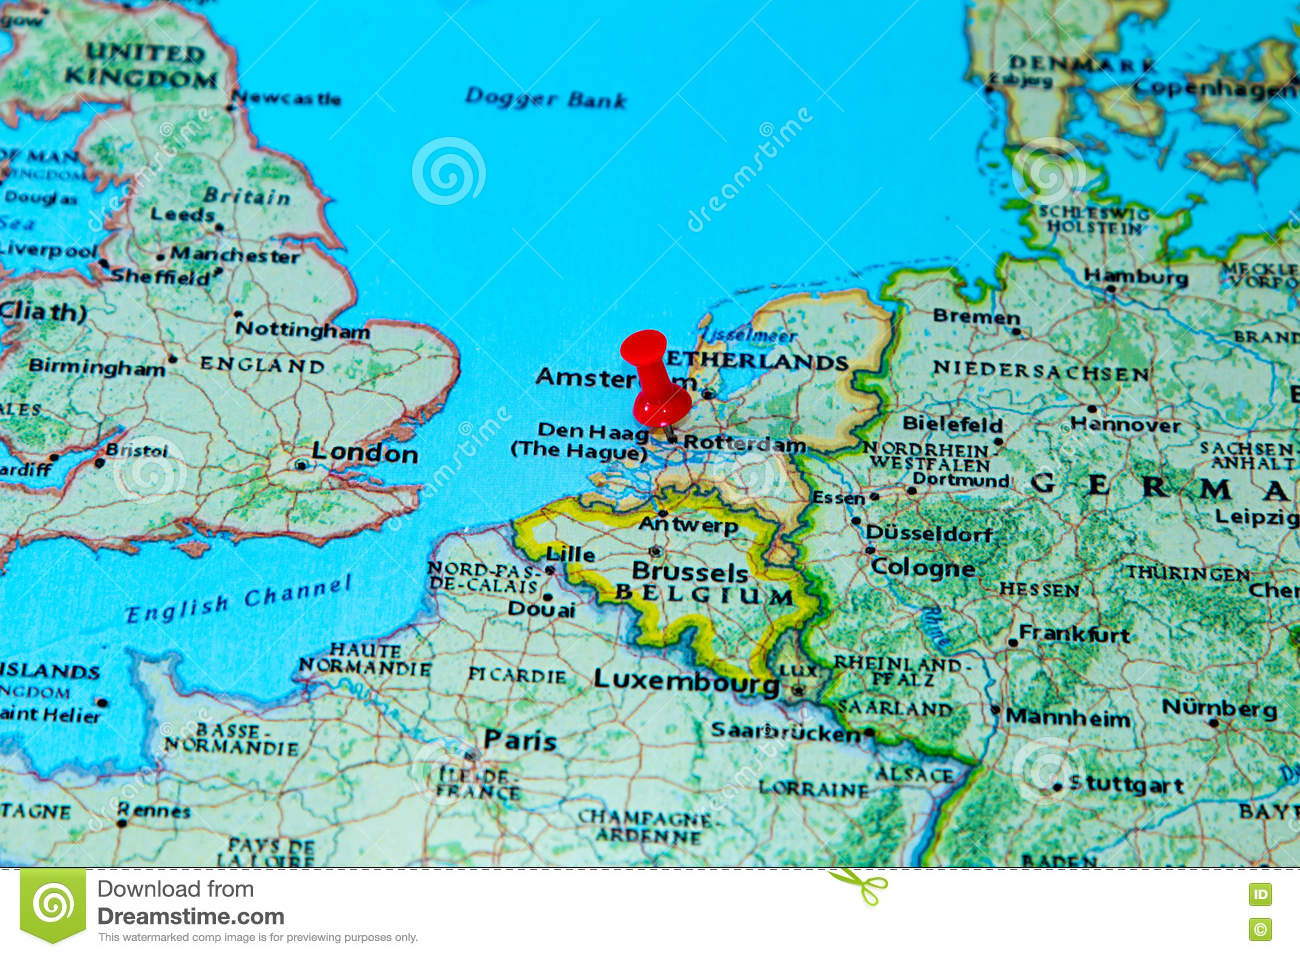 Rotterdam, Netherlands Pinned On A Map Of Europe Stock Photo ...